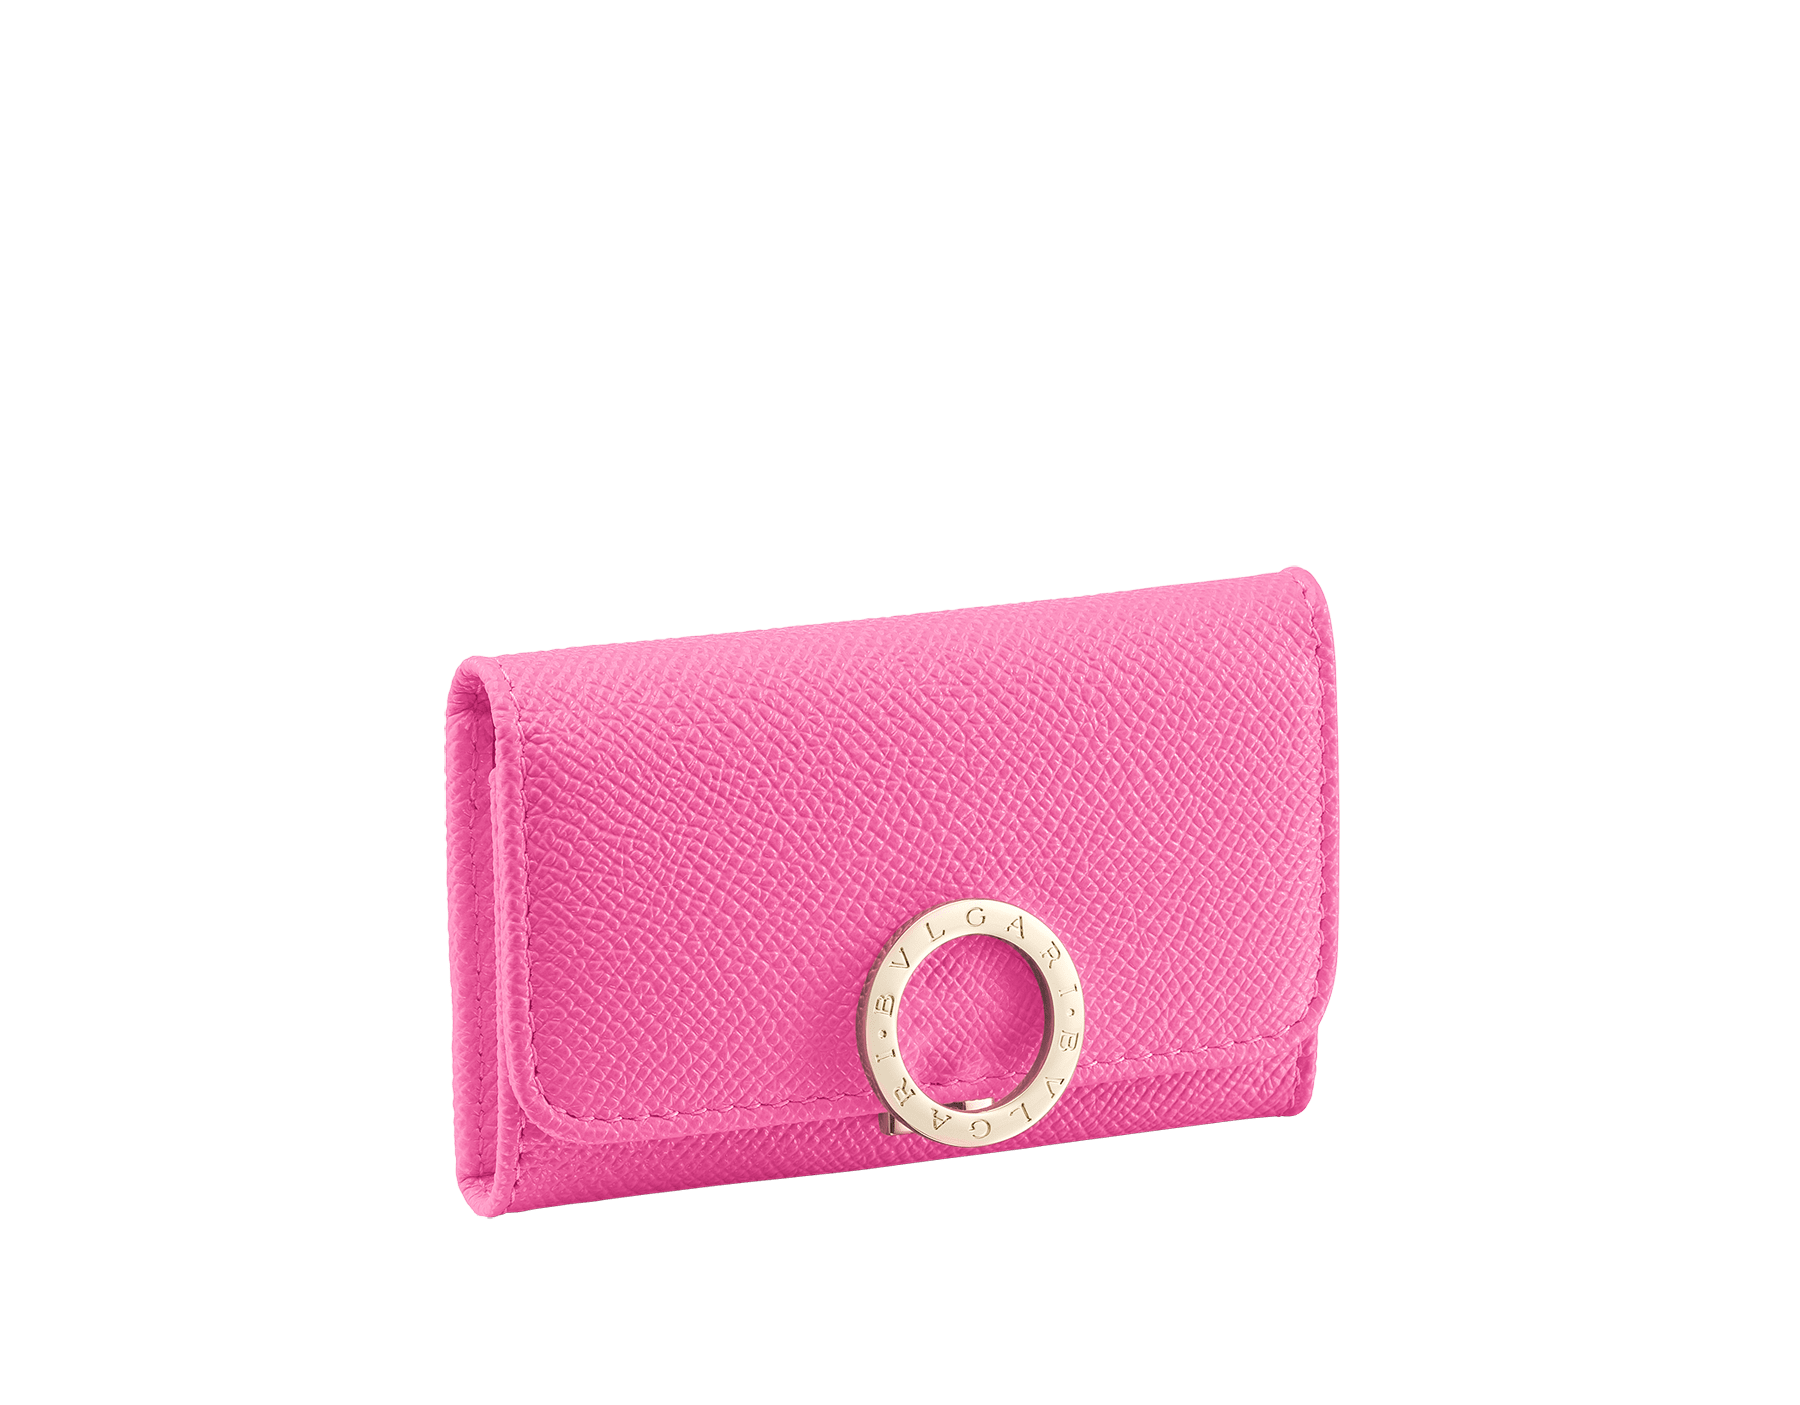 """BVLGARI BVLGARI"" small key holder in mint bright grain calf leather and taffy quartz soft nappa leather. Iconic logo clip closure in light gold plated brass. 579-KEYHOLDER-Sb image 1"